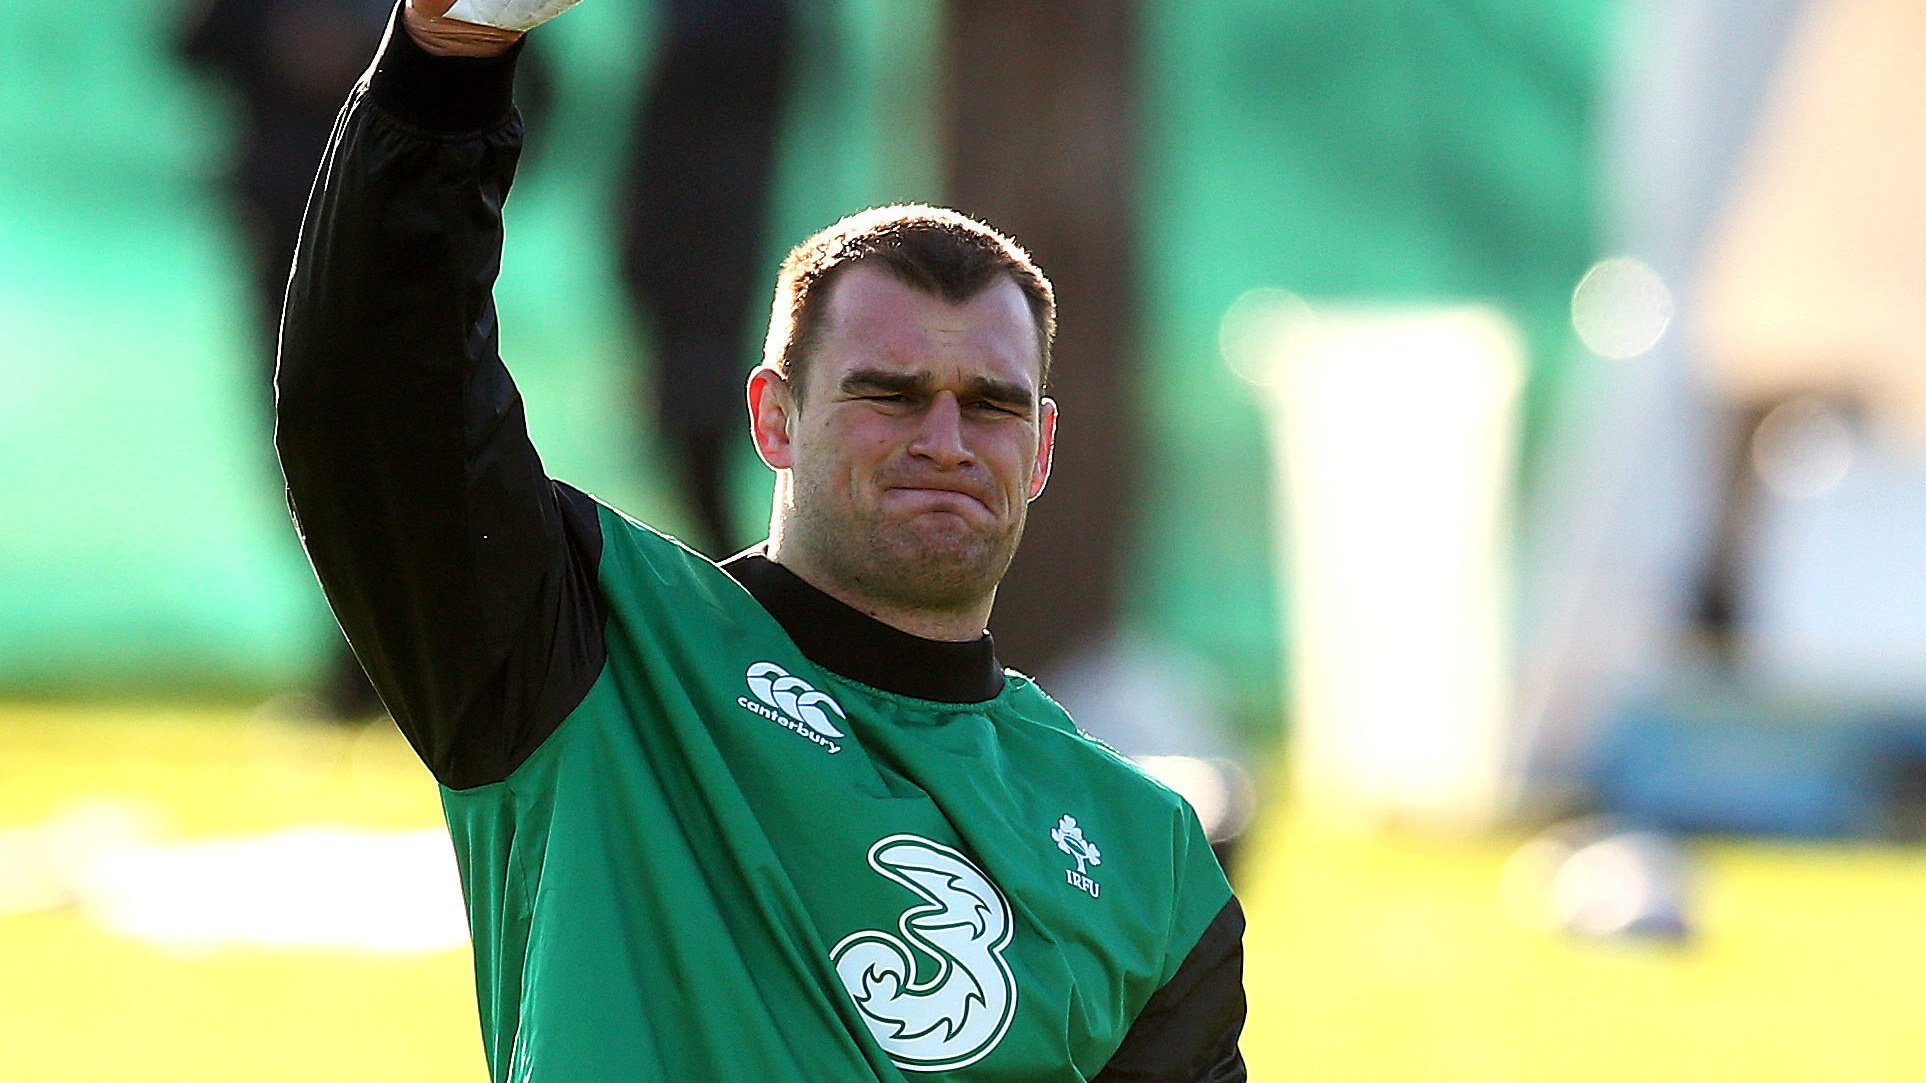 Injury forces Ross Moriarty out of British & Irish Lions tour